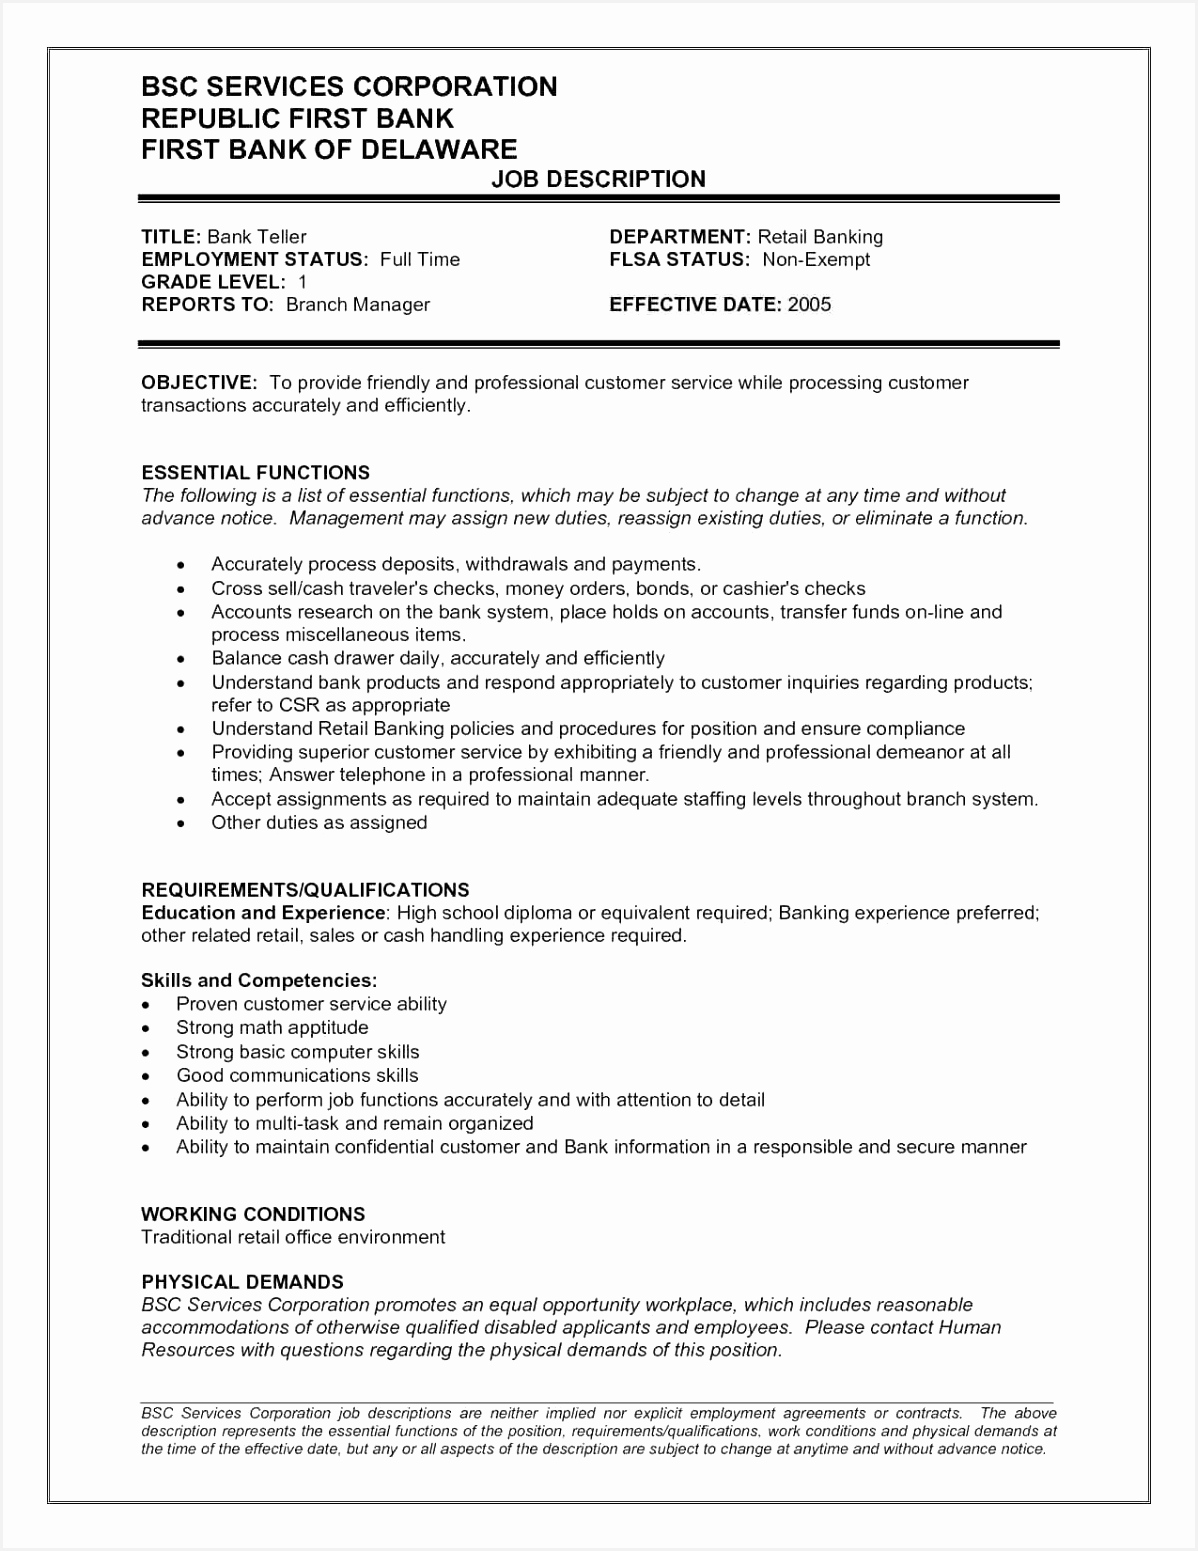 Sample Bank Management Resume Rkbpg Lovely 19 Expensive Management Resume Examples Sierra15511198